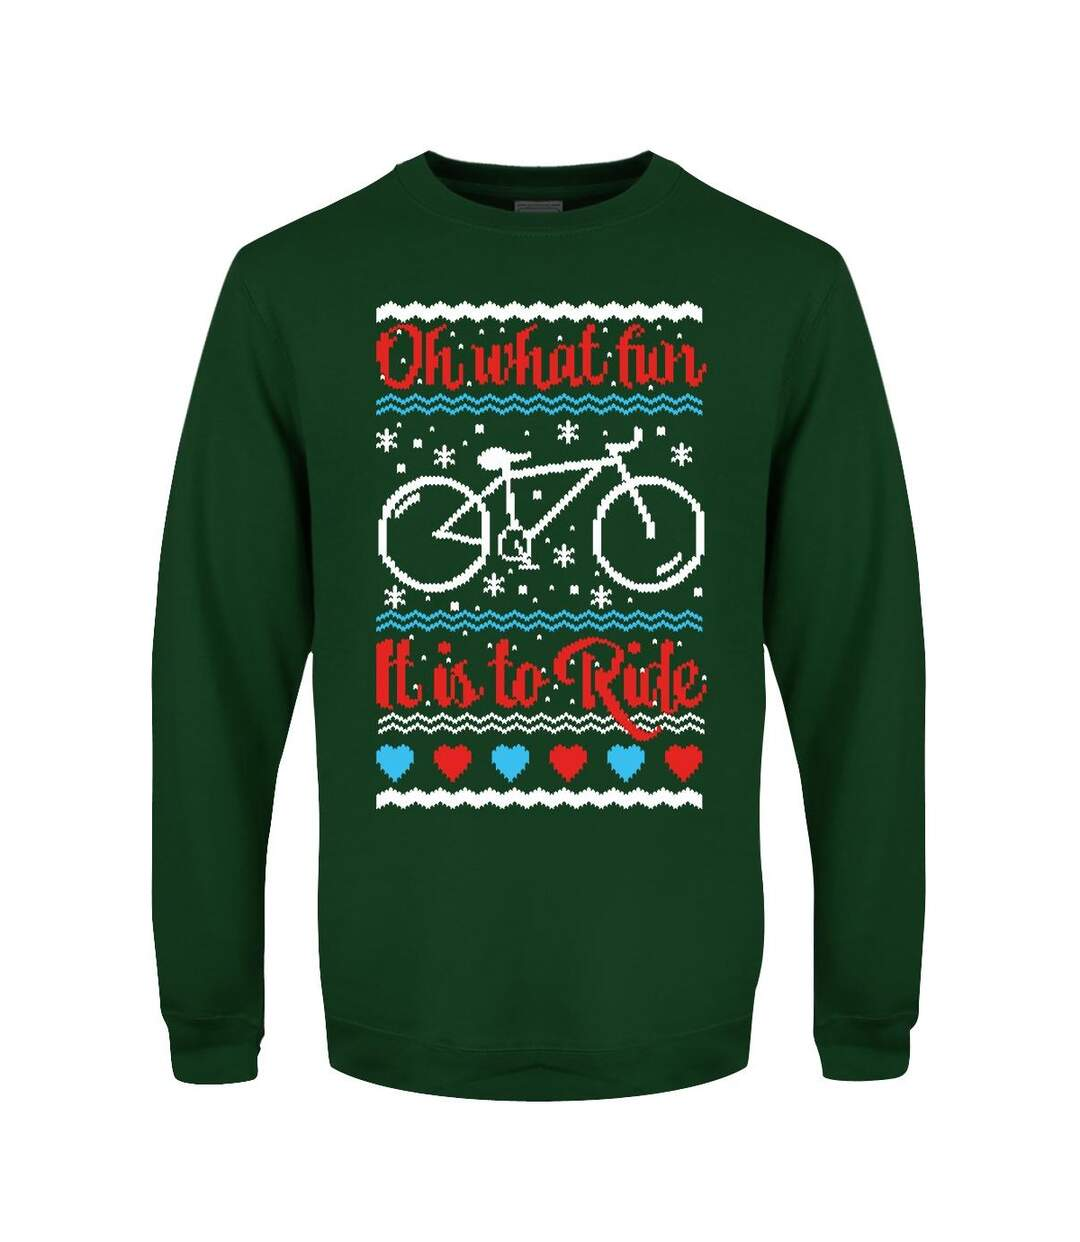 Grindstore Mens Oh What Fun It Is To Ride Christmas Jumper (Bottle Green) - UTGR4739